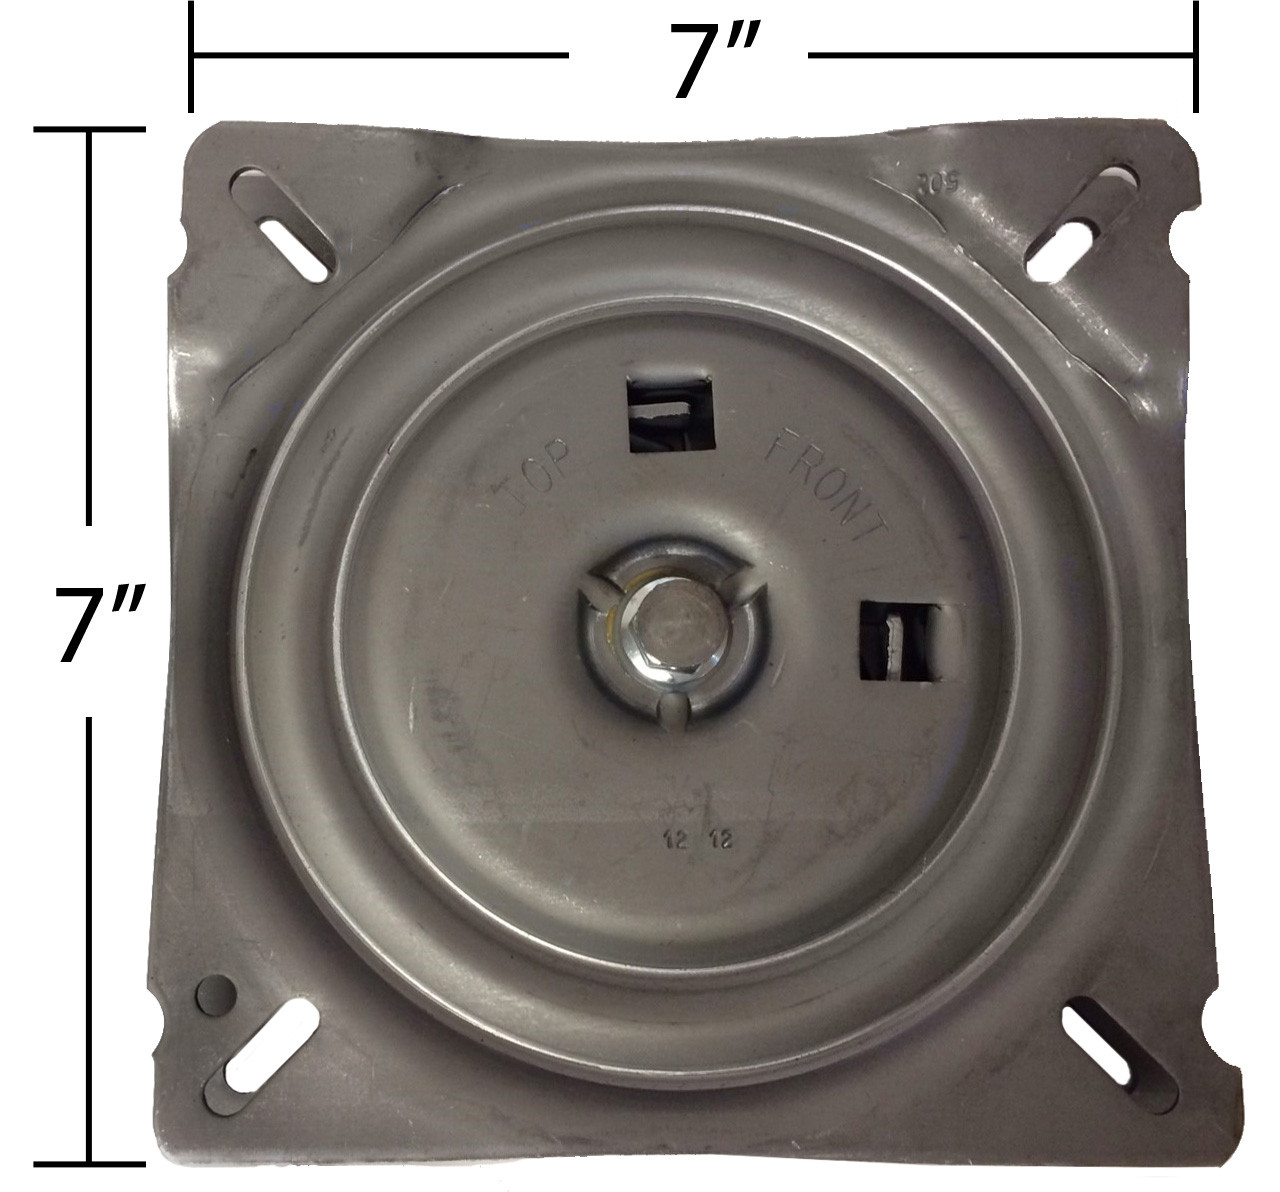 Replacement Pitched Auto Return Bar Stool Swivel Plate 7  : S4938252520with252520dims03843140427853412801280 from www.chairpartsonline.com size 1280 x 1192 jpeg 476kB